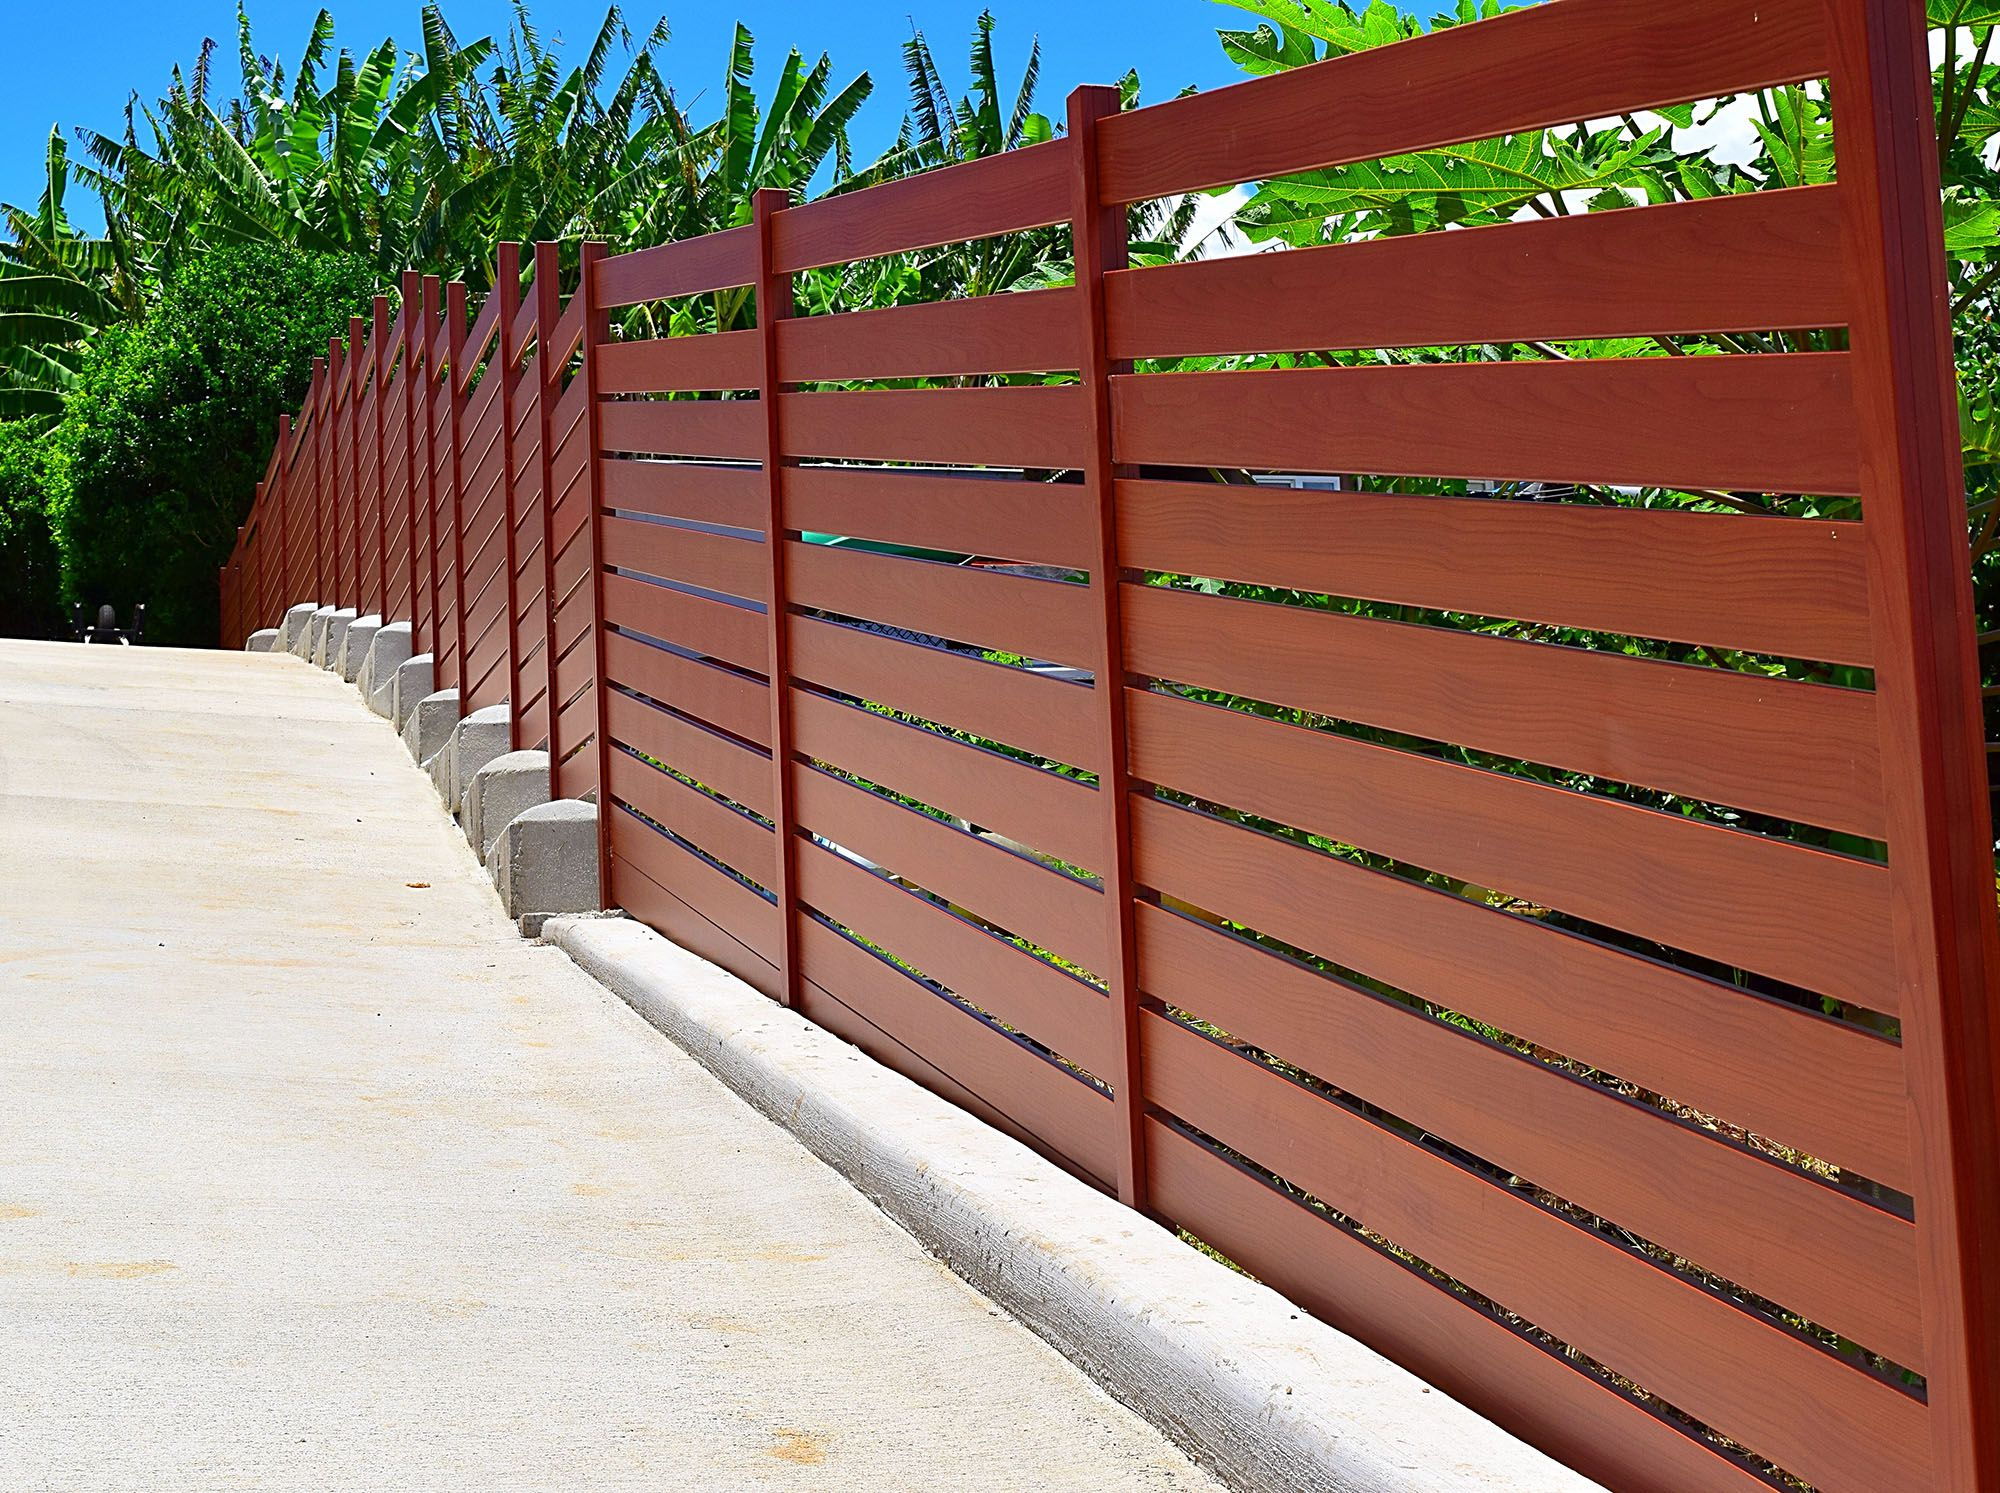 Knotwood Aluminum Fencing Uses A Patented Concealed Fastening System Which Hides Unsightly Screws And Rivets Wooden Gate Door Aluminum Fencing Wooden Gates